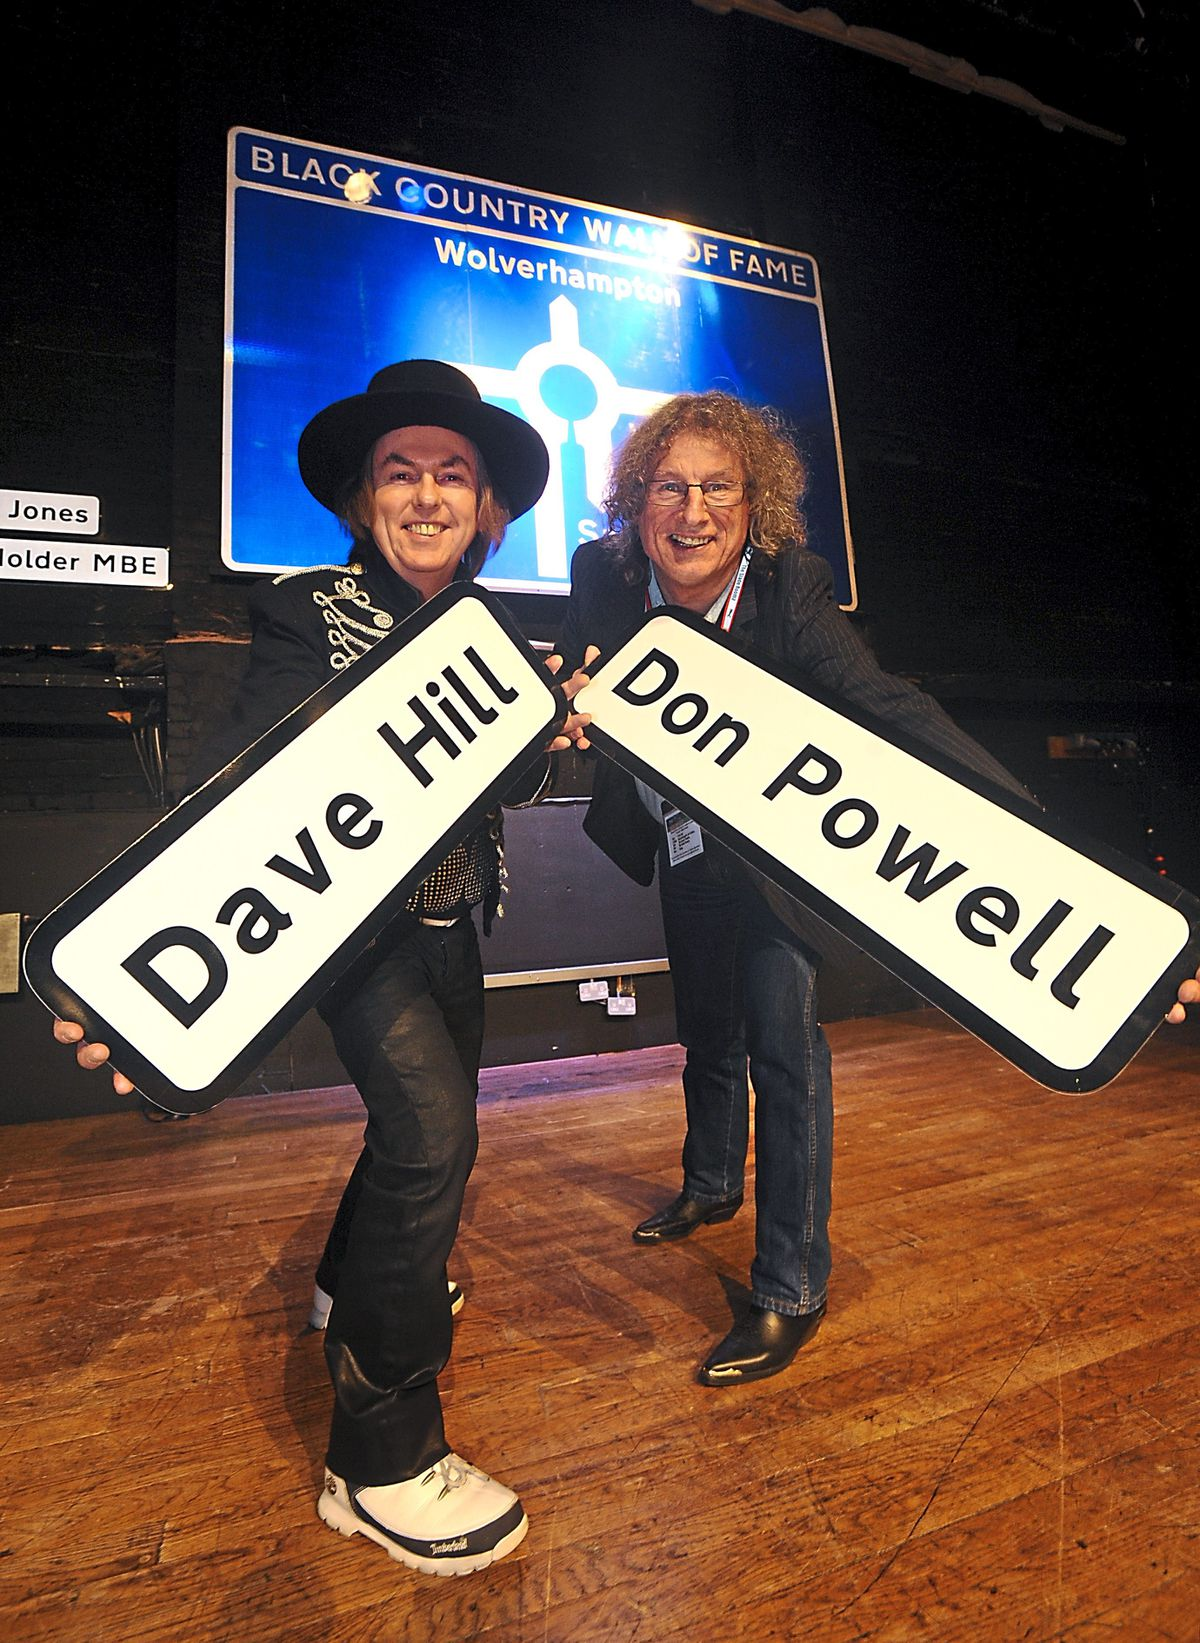 Slade's Dave Hill and Don Powell with their Wall of Fame signs at the Civic Hall, Wolverhampton